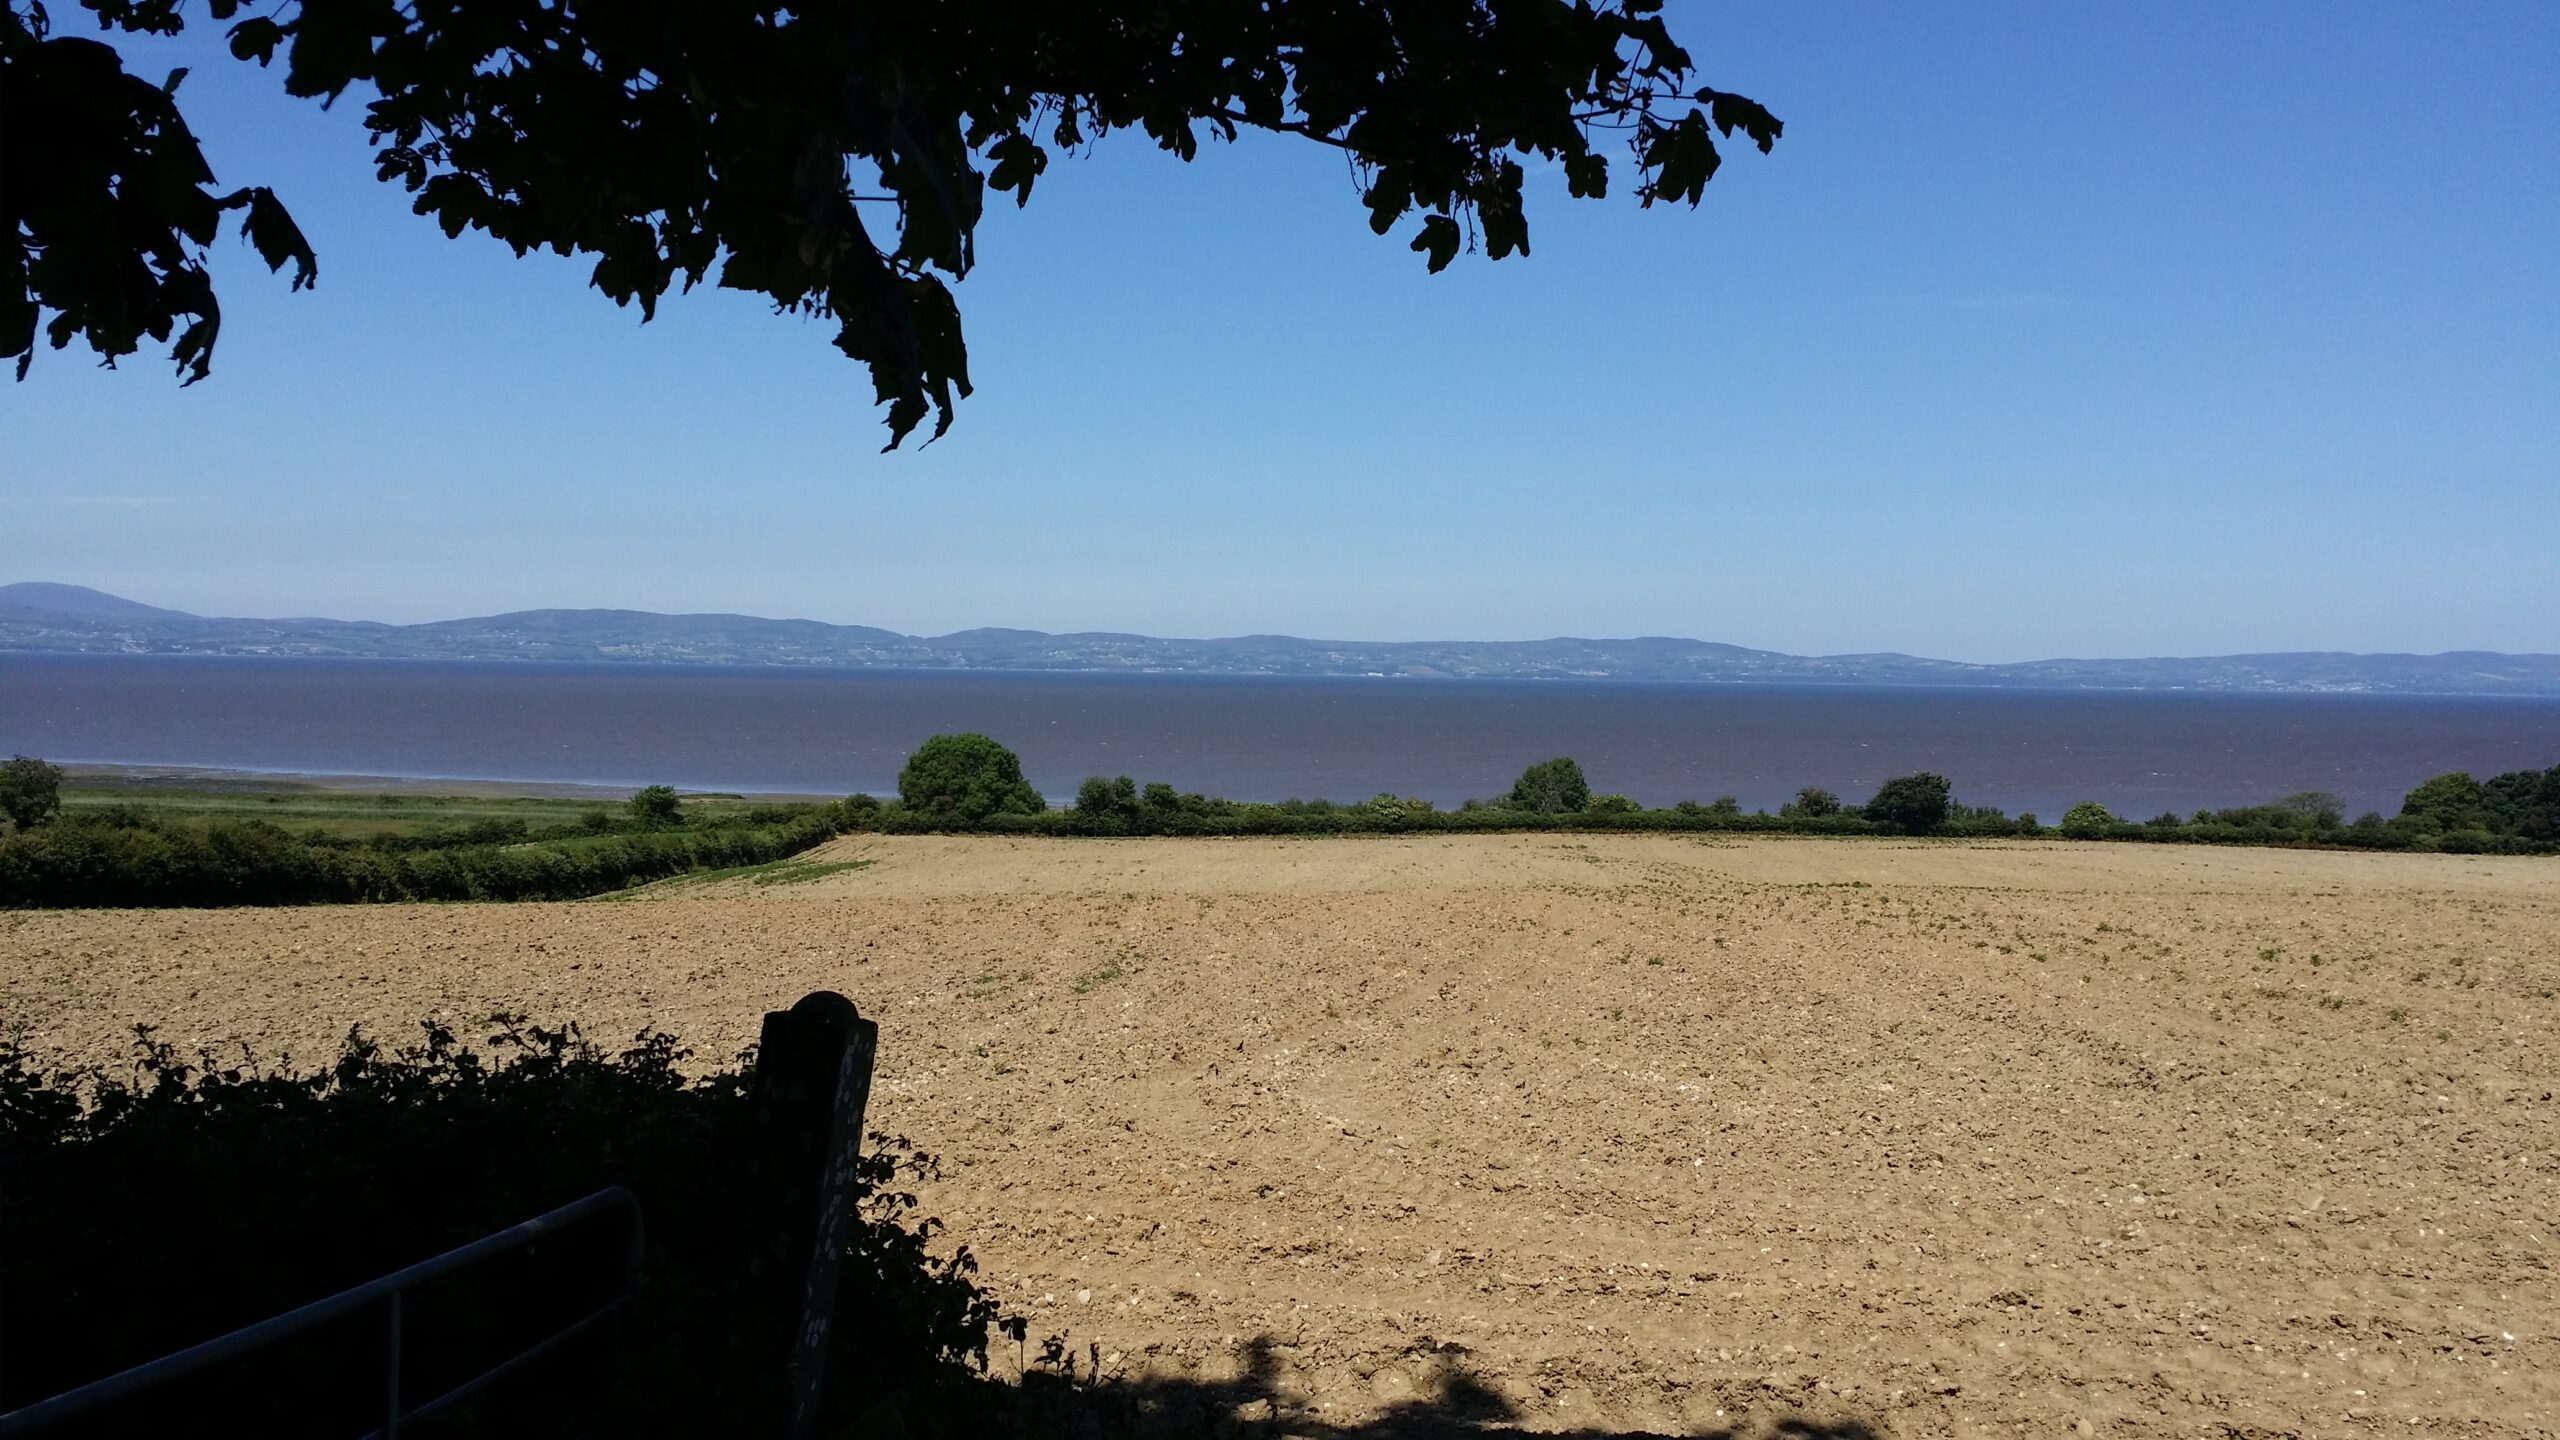 Lough Foyle runs from left to right across the middle of the photo with the hills of Donegal on the other shore and a plowed field in Northern Ireland in the foreground.